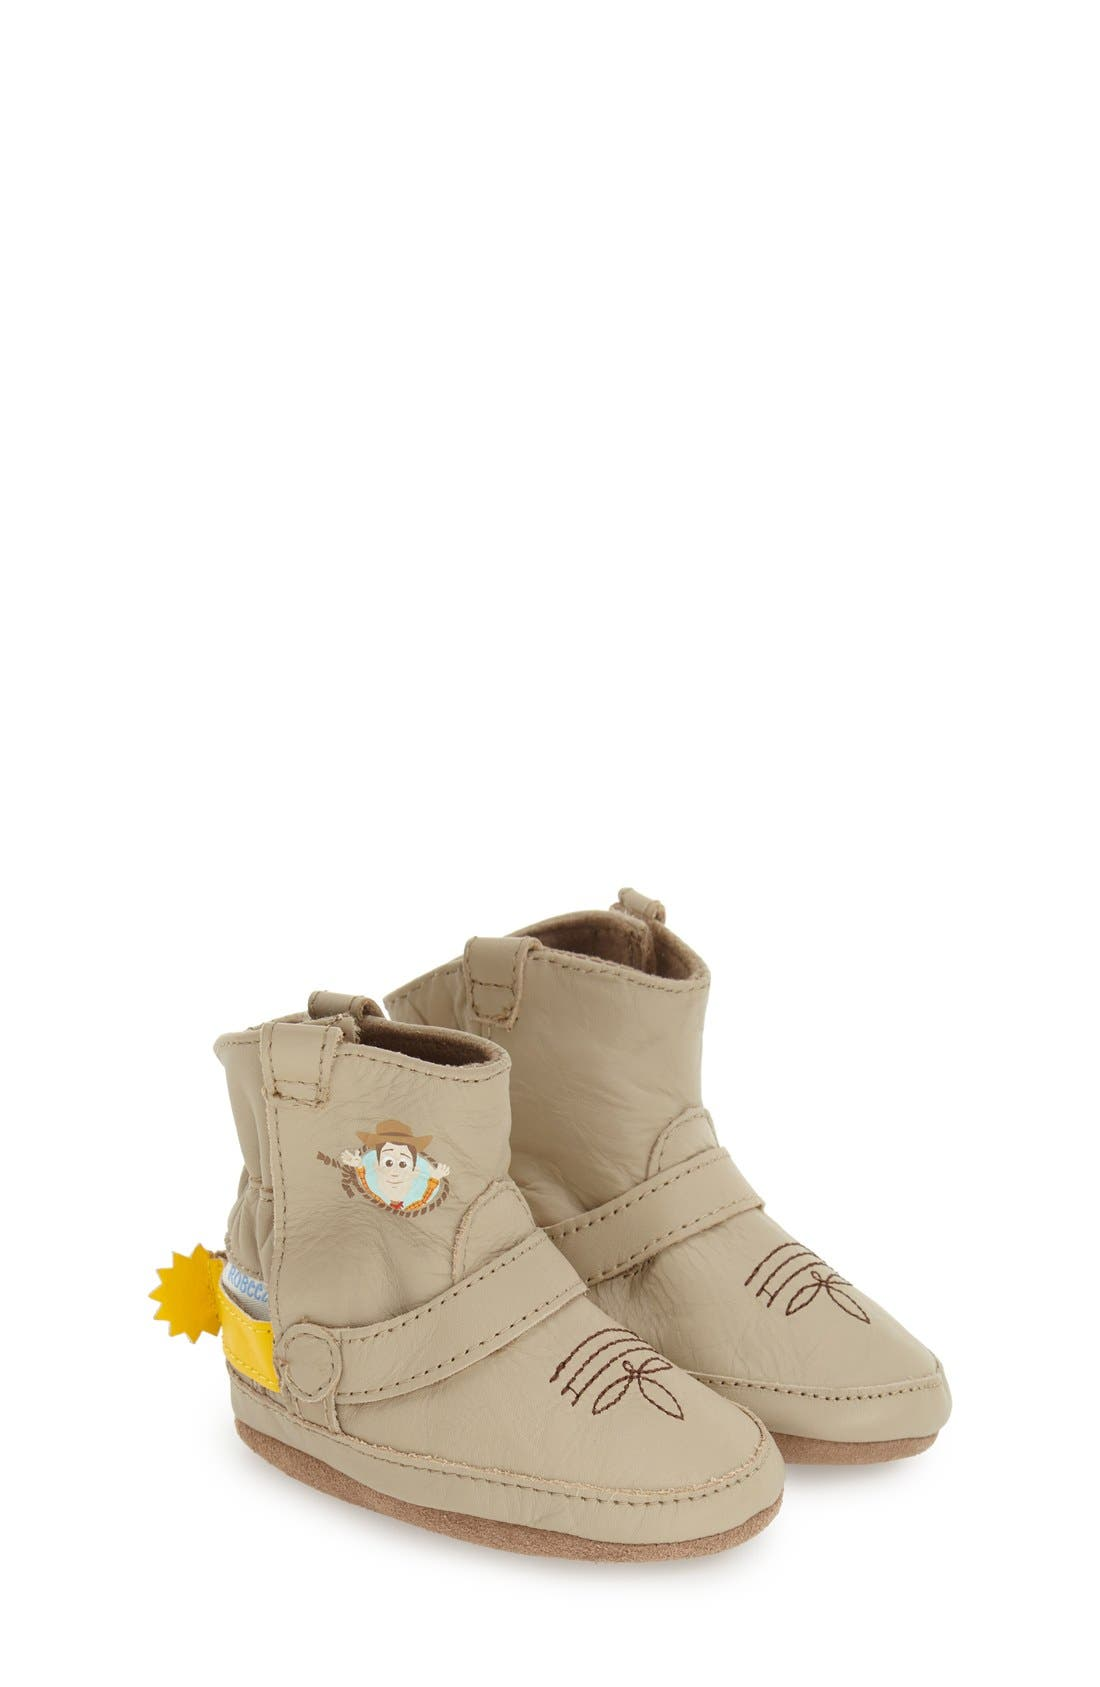 'Disney<sup>®</sup> Woody<sup>®</sup> Bootie' Crib Shoe,                         Main,                         color, Taupe